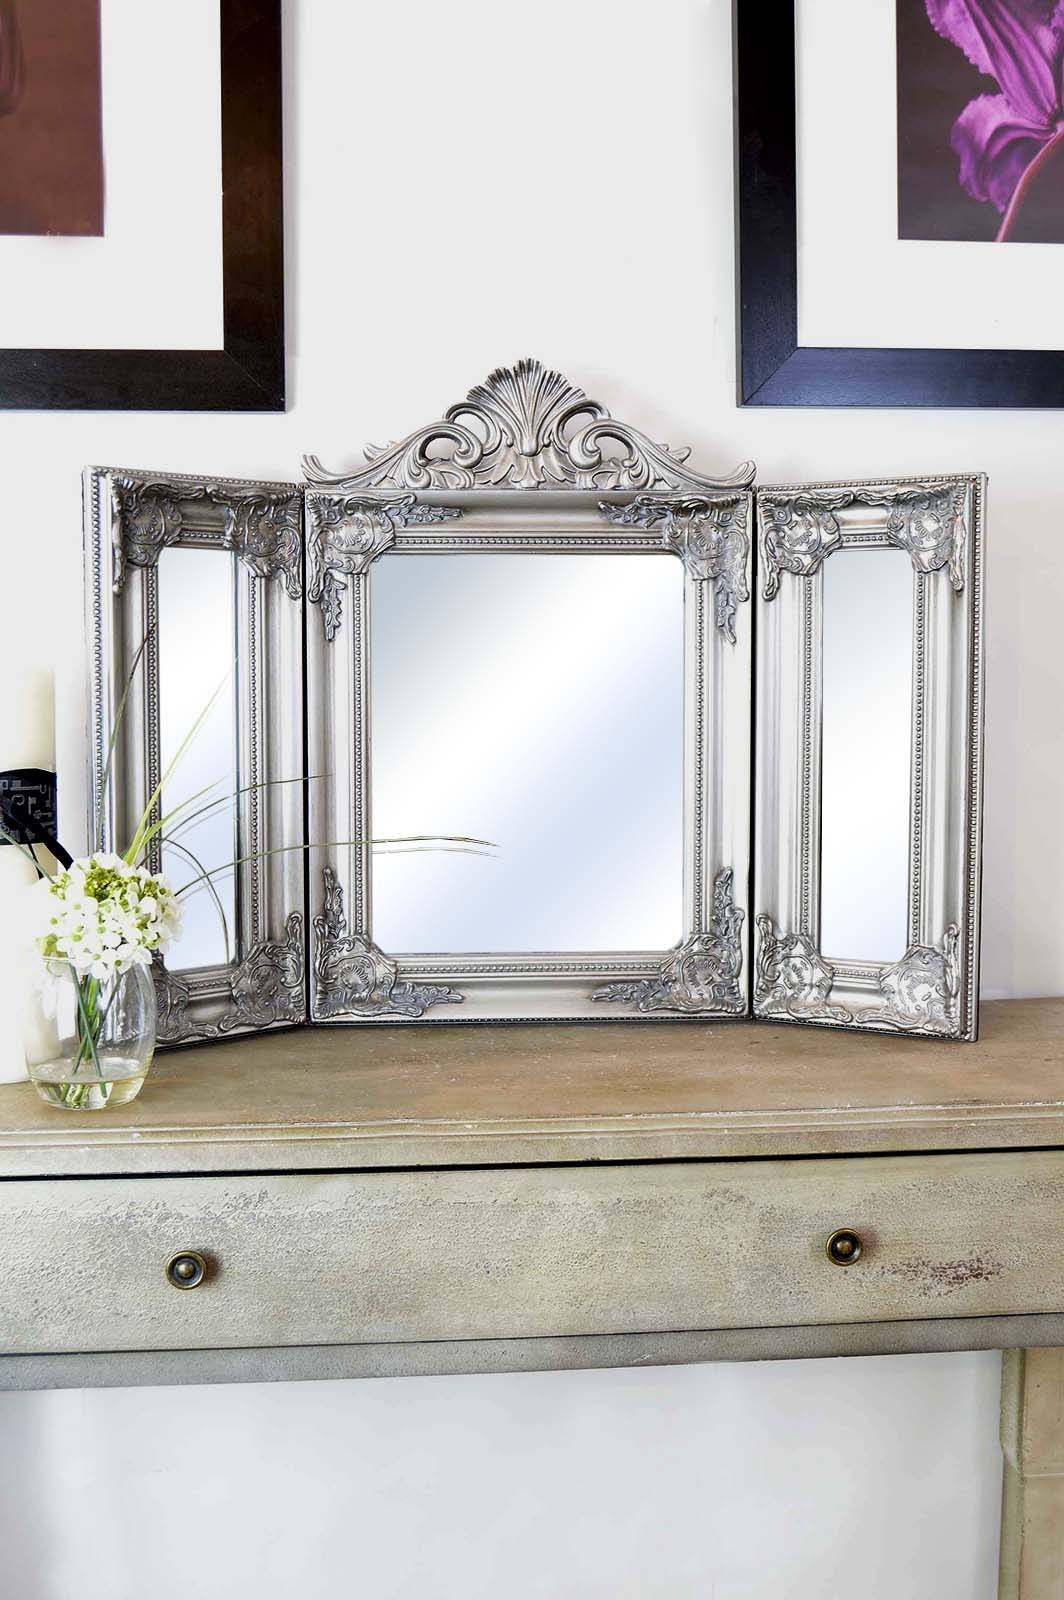 Elegant Silver Antique Style Design Free Standing Dressing Table pertaining to Free Standing Dressing Table Mirrors (Image 8 of 15)